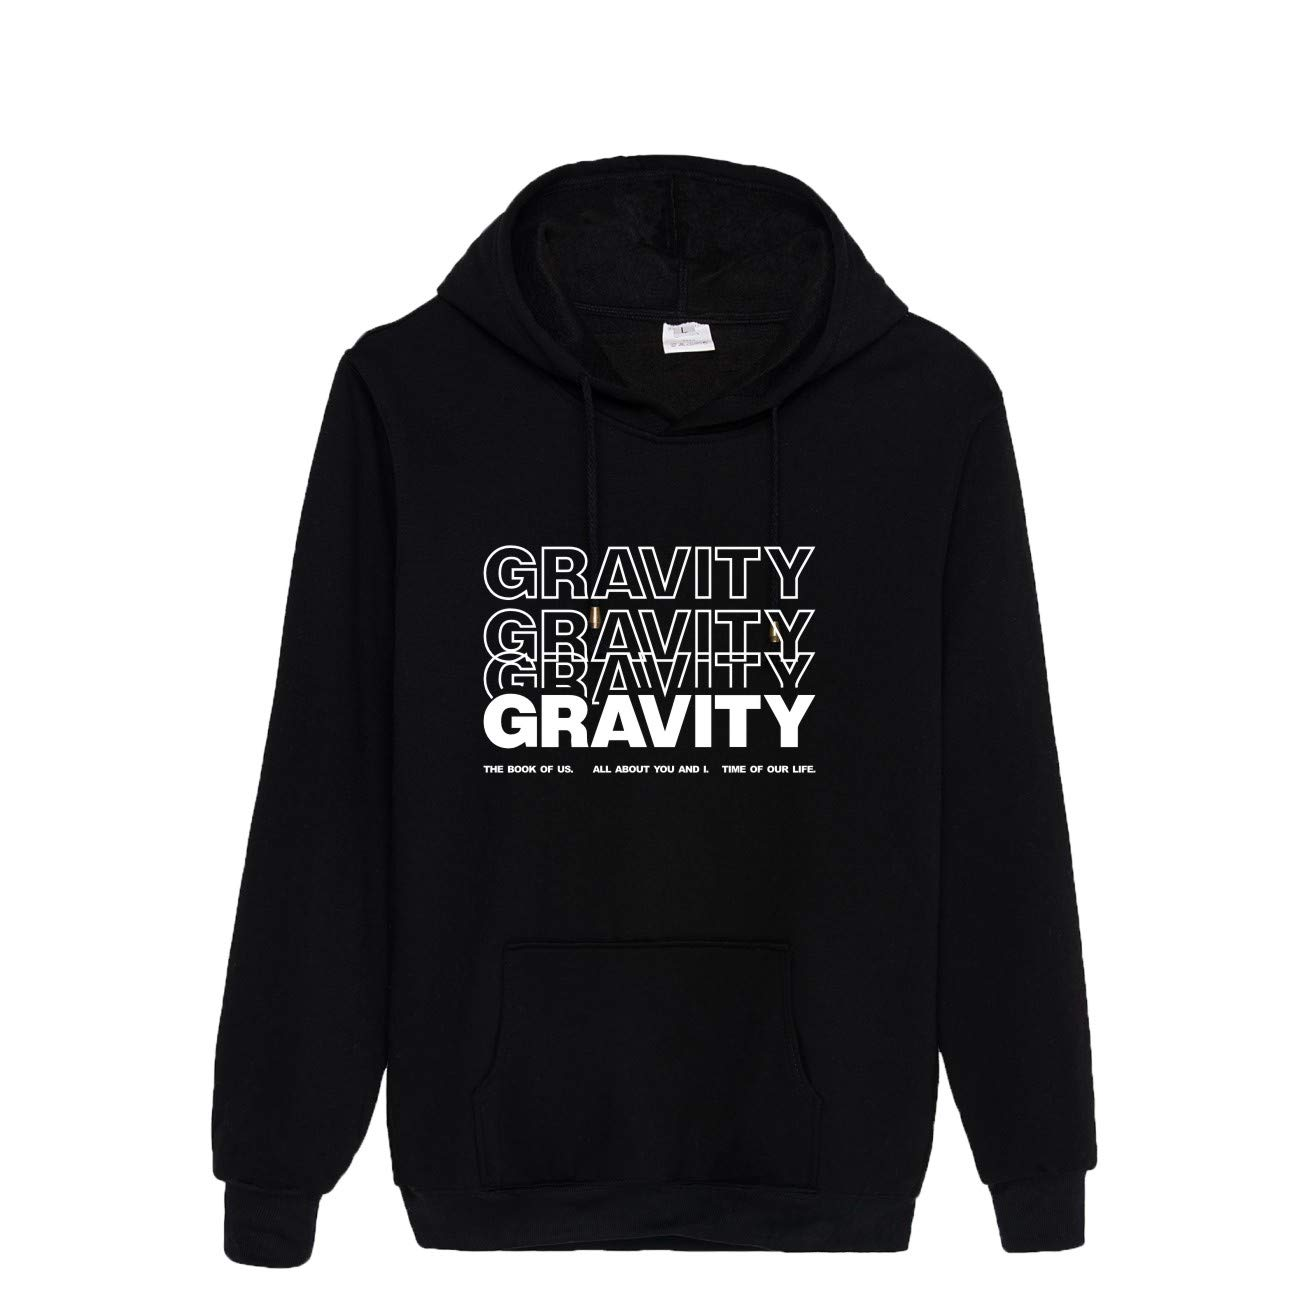 NCTCITY KPOP Day6 Felpe con Cappuccio Sciolto Sweatshirts The Book of Us Gravity Stampate Pullover Maglione a Maniche Lunghe Casuale Tops per Uomini e Donne SUNGJIN JAE Young K WONPIL DOWOON